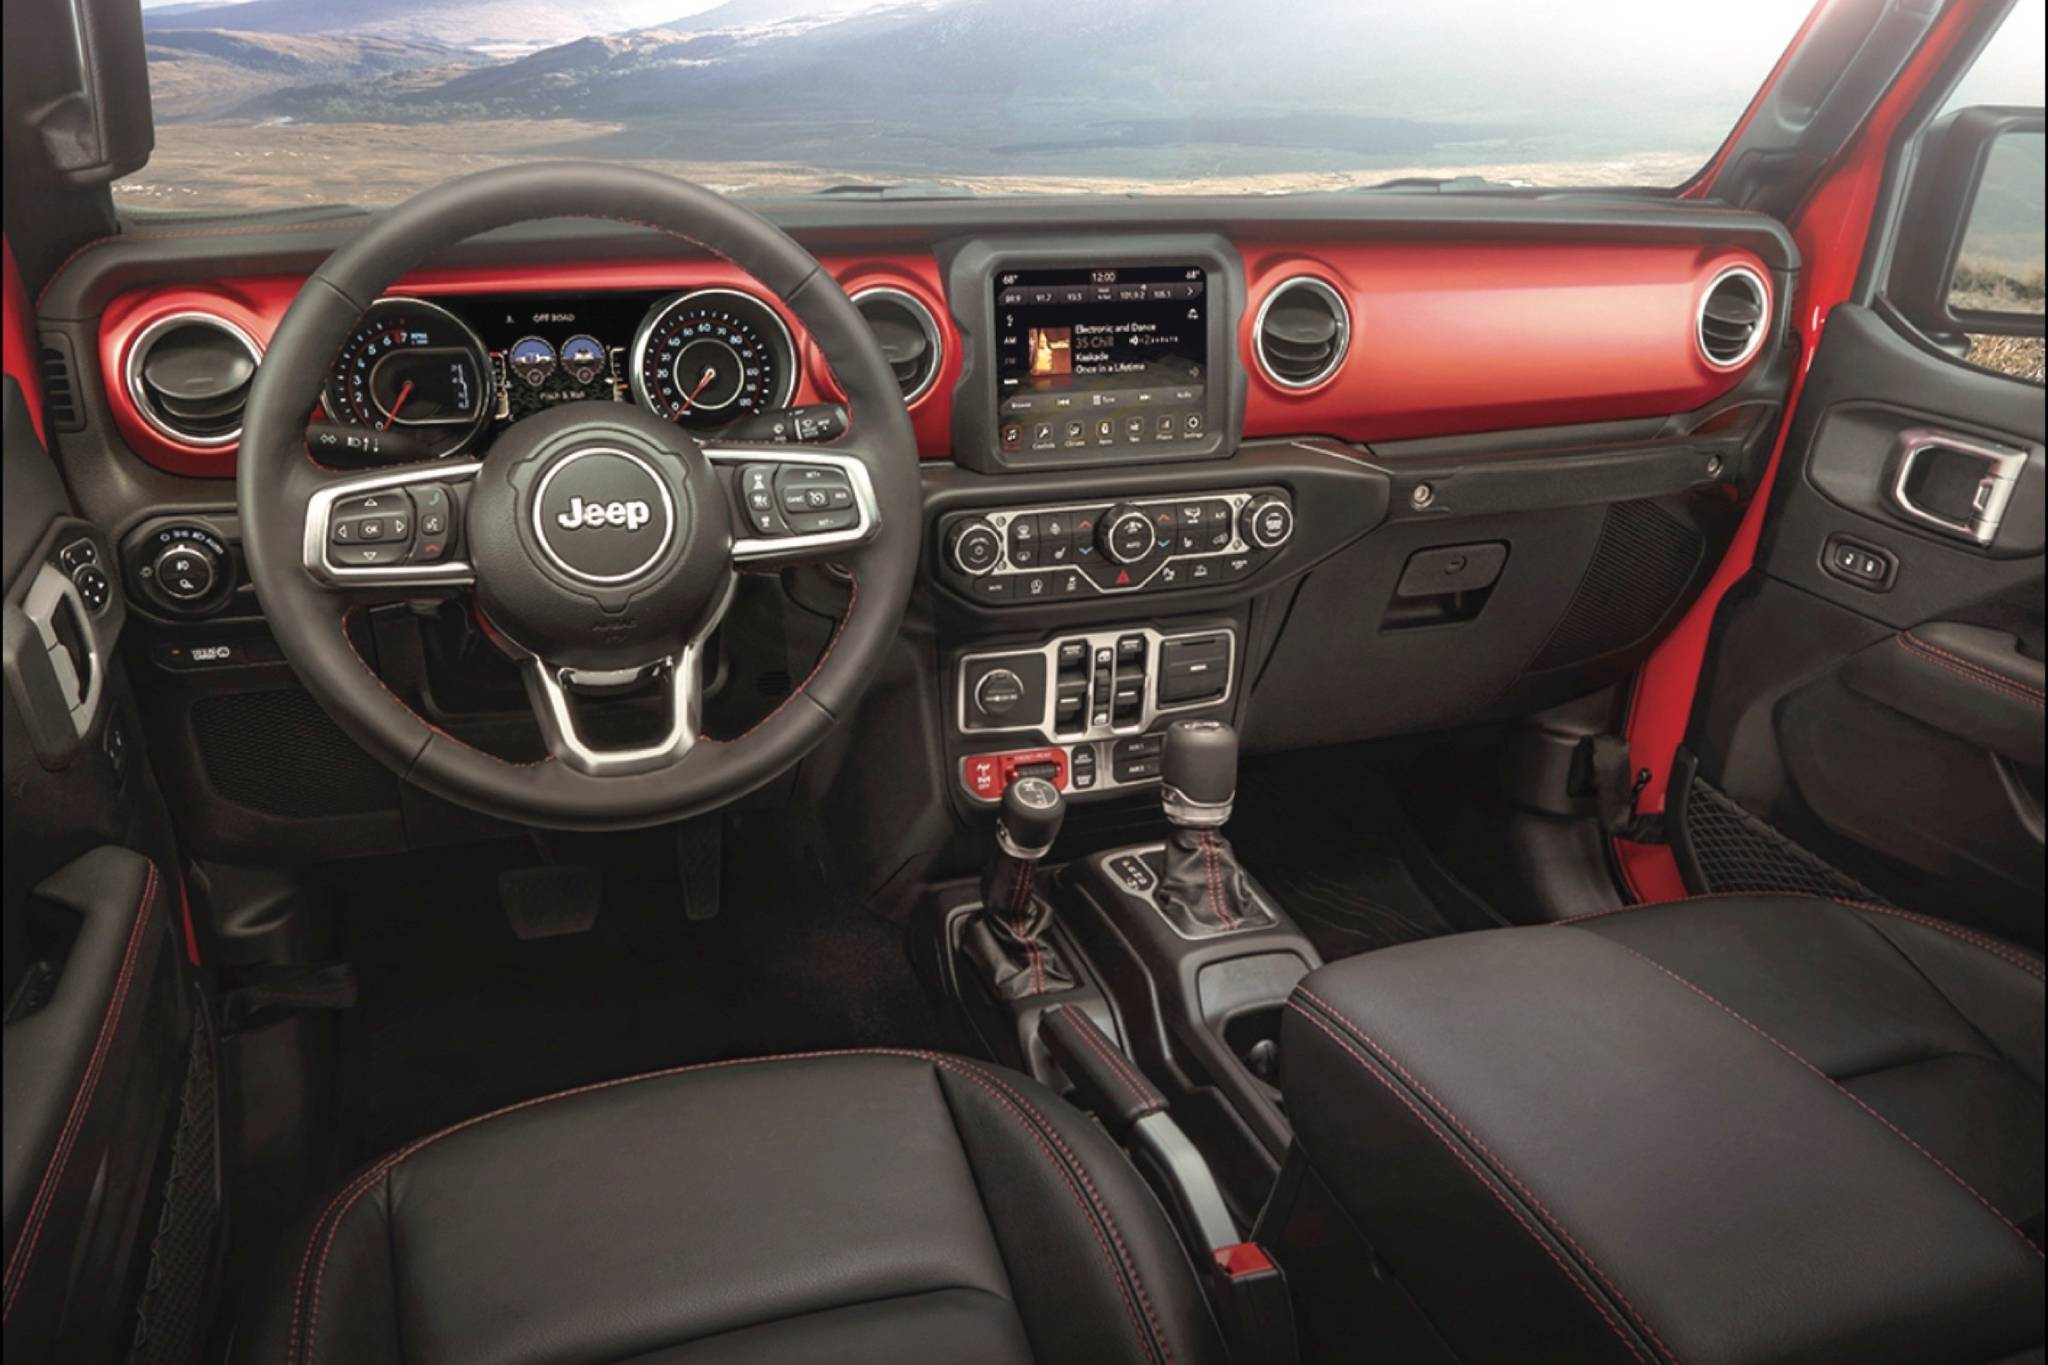 The dash layout of the Gladiator looks like that of any other Wrangler, which is to say it's a busy spot. Note that one shift lever is for the transmission and the other is for operating the transfer case for high-low gear range. Photo: FCA